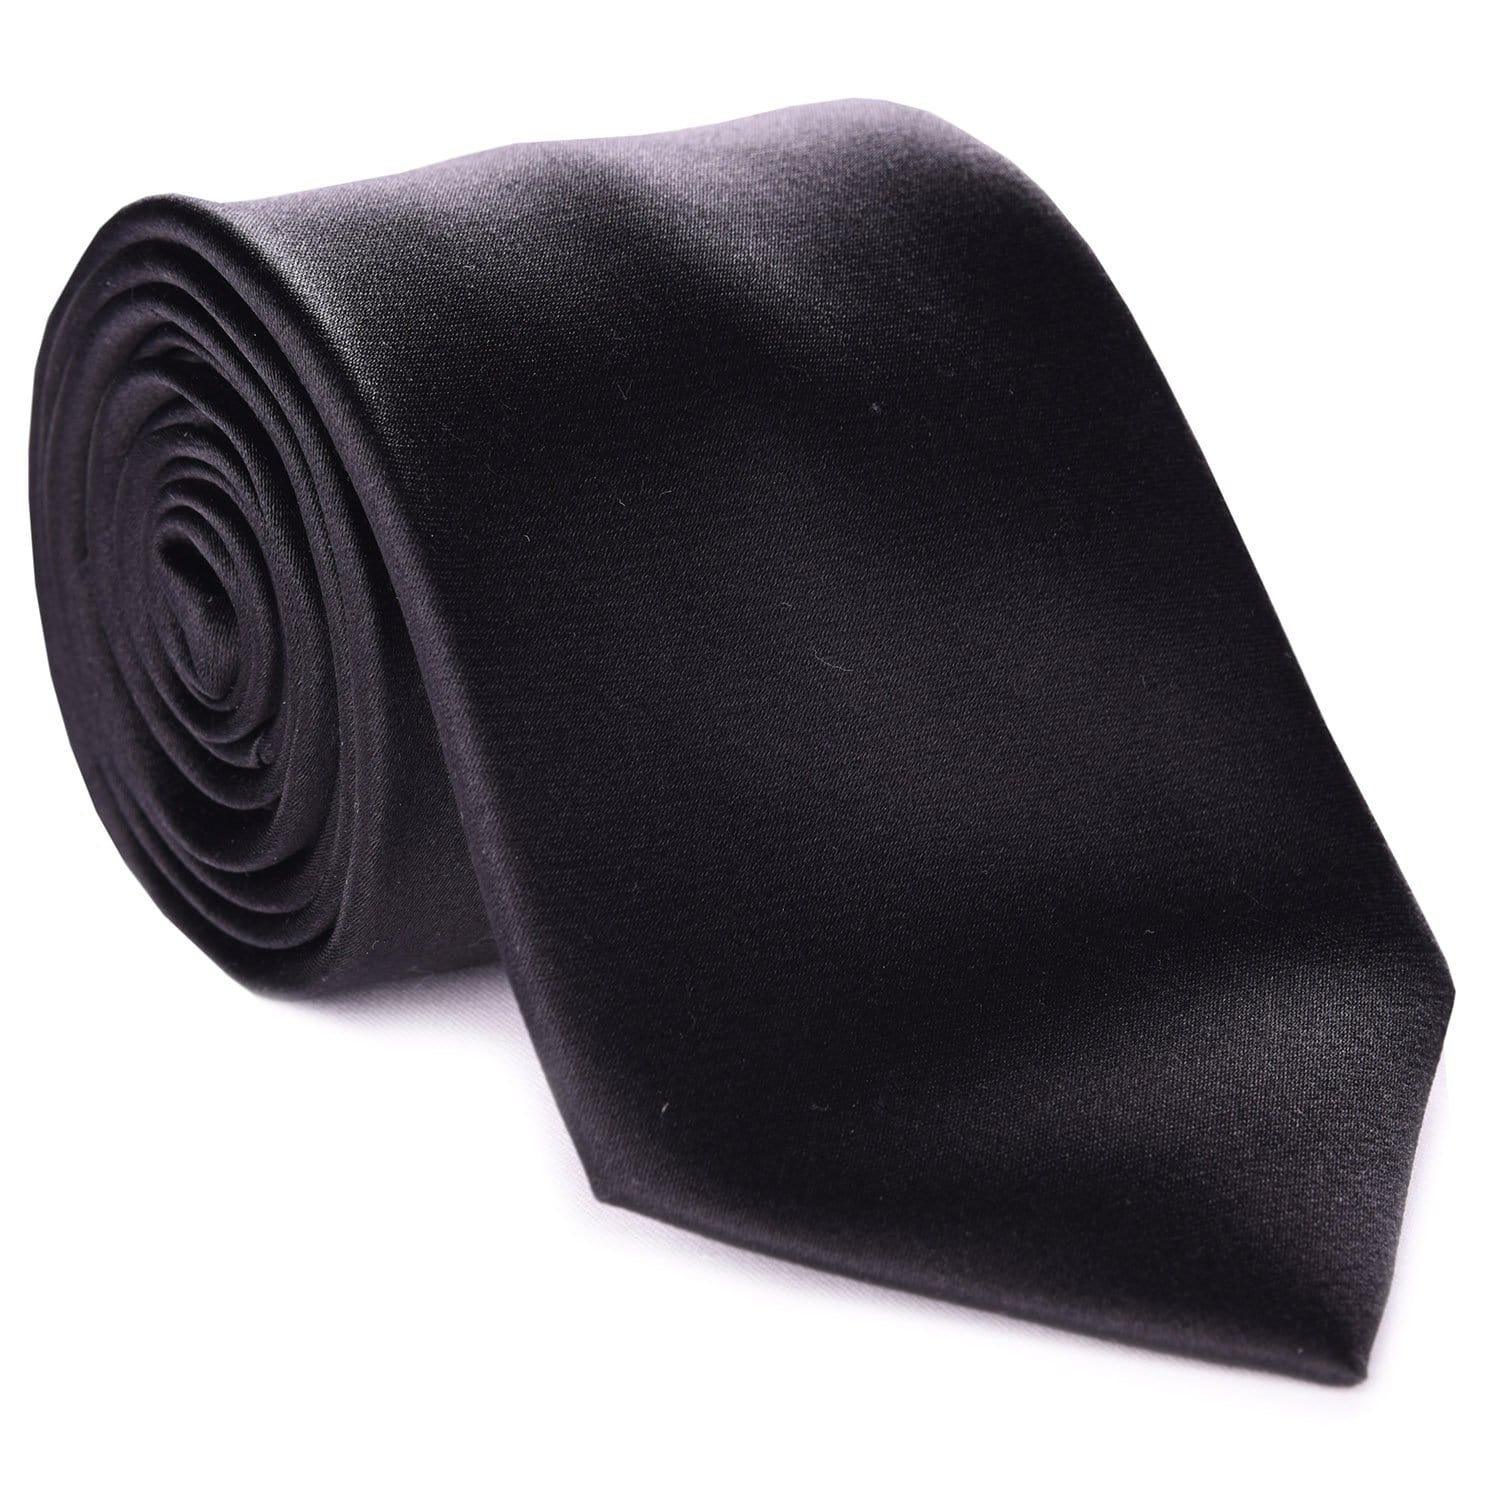 Black Formal Satin Tie - Haspel Clothing